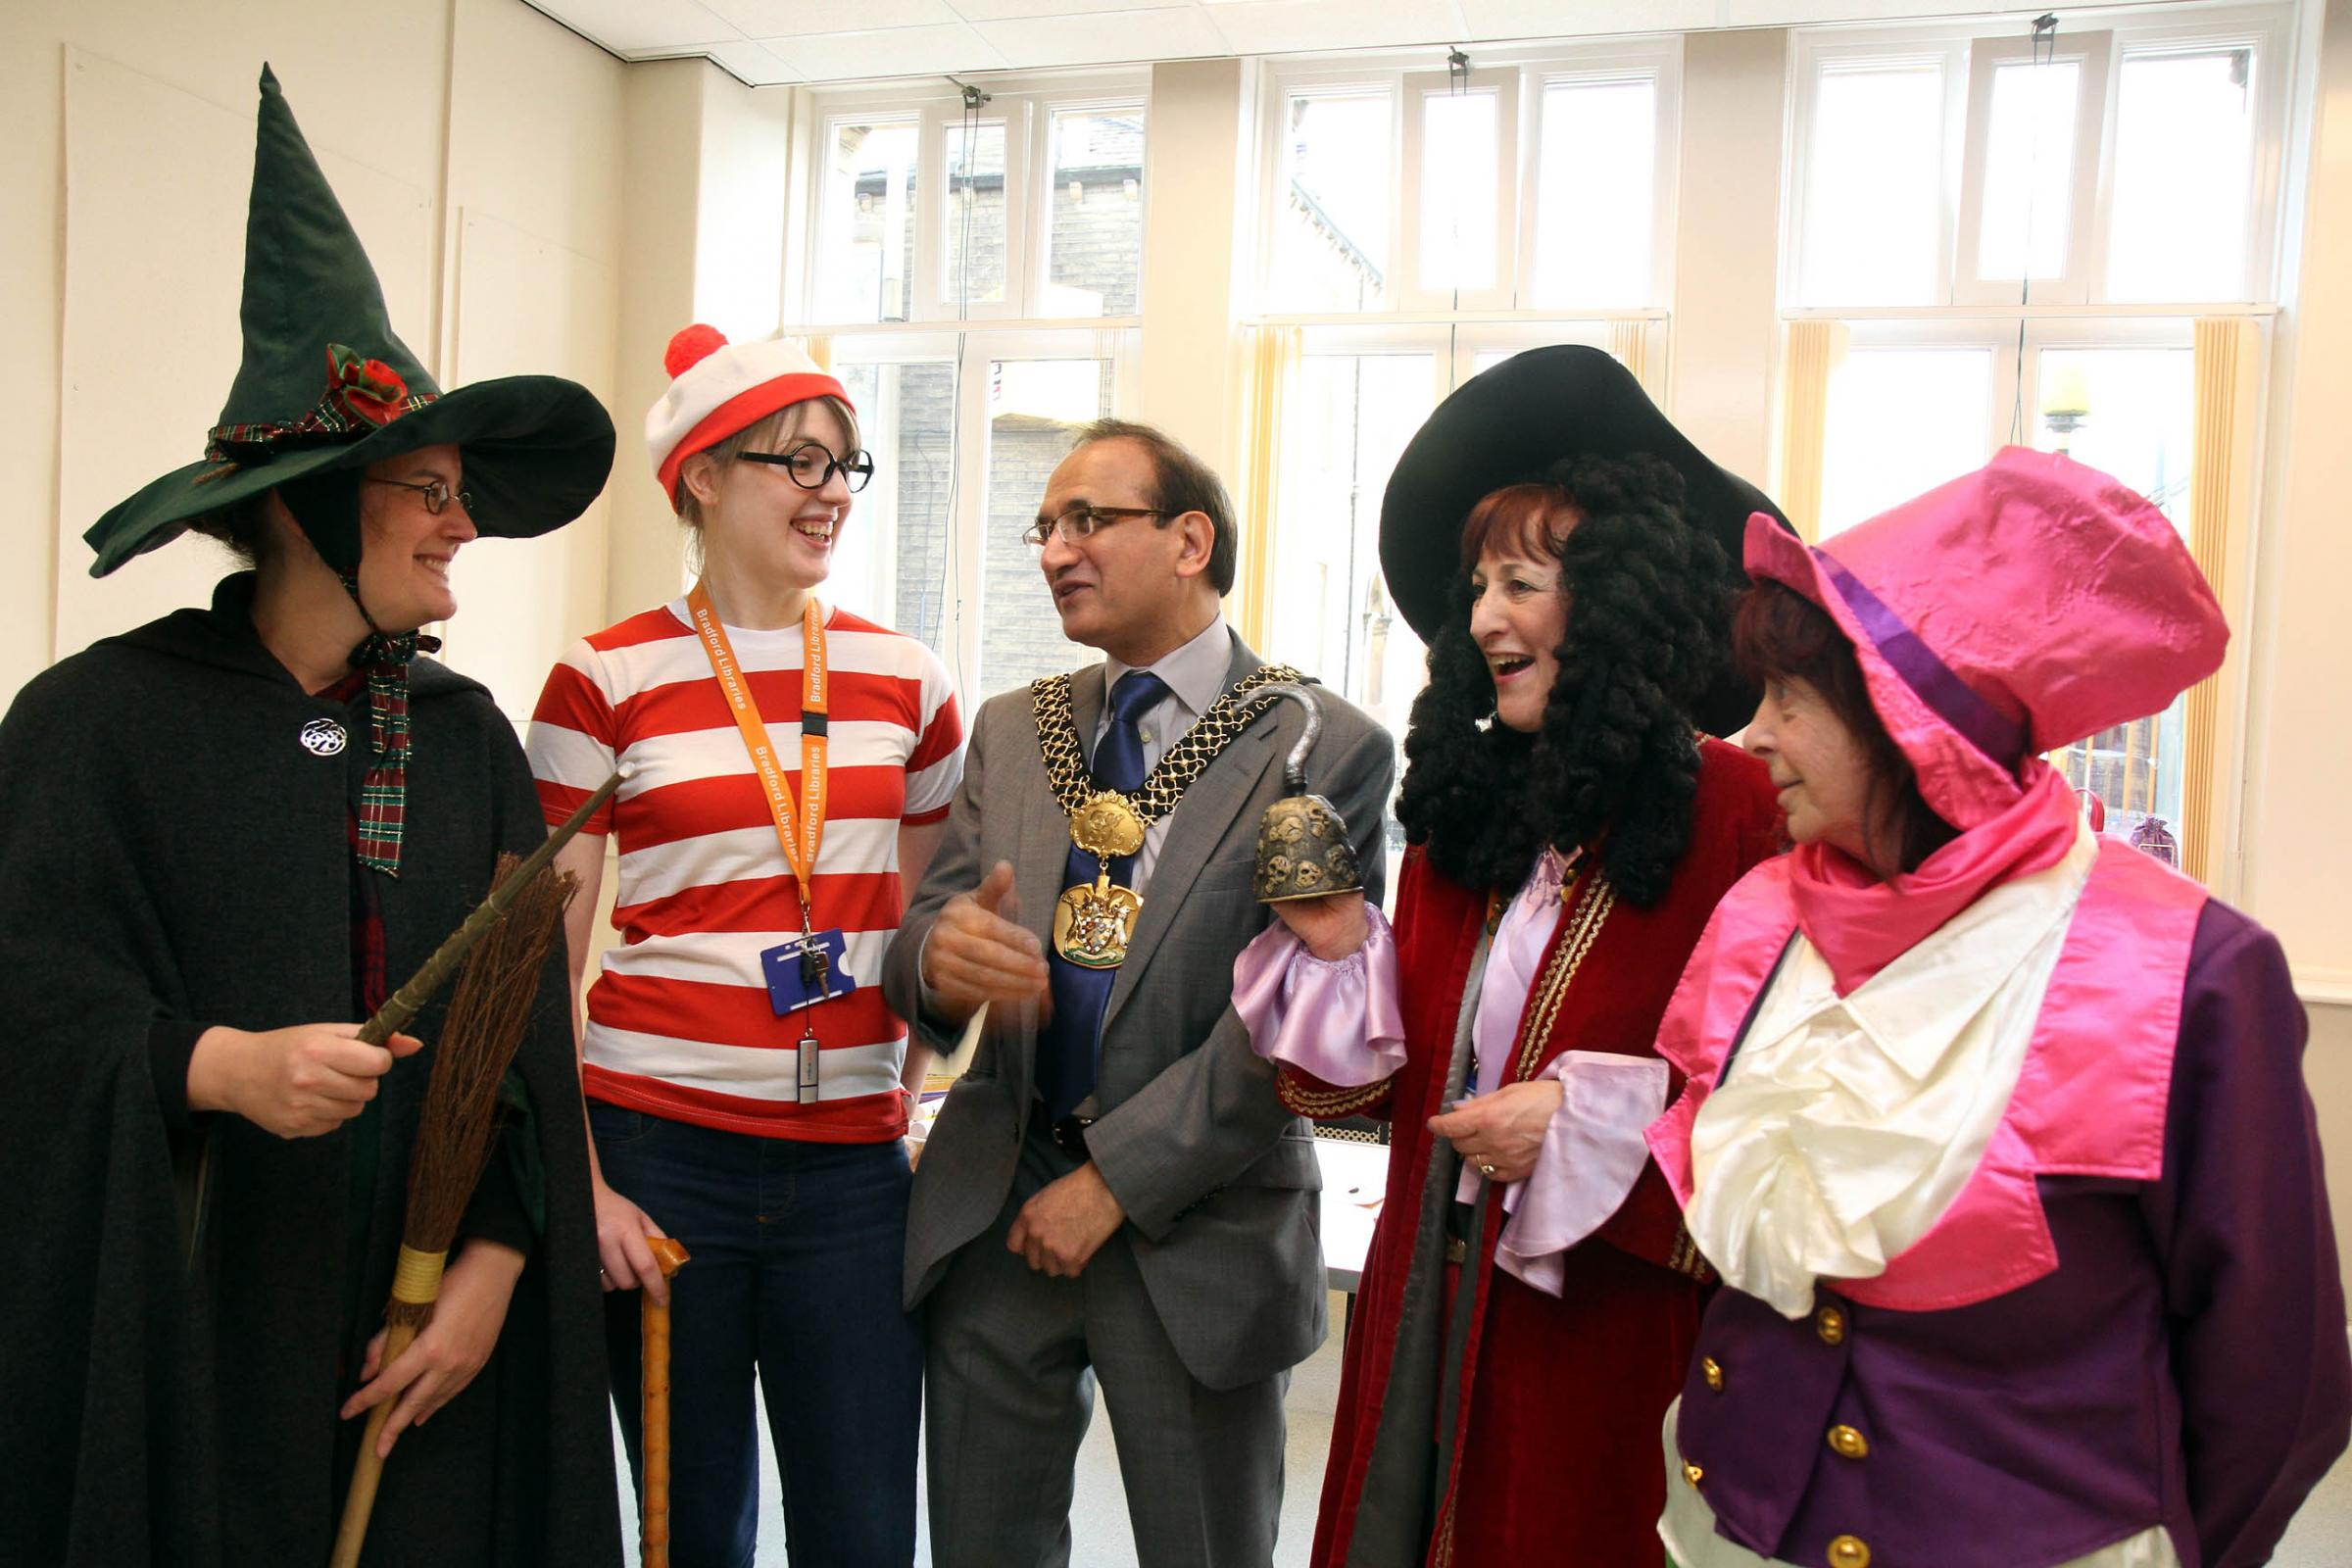 Lord Mayor of Bradford, Councillor Khadim Hussain, meets library staff, from left, Carole Birley, Frances Bancroft, Sally Haigh and Carol Wallace, who were  dressed as book characters for the reopening of Silsden Town Hall